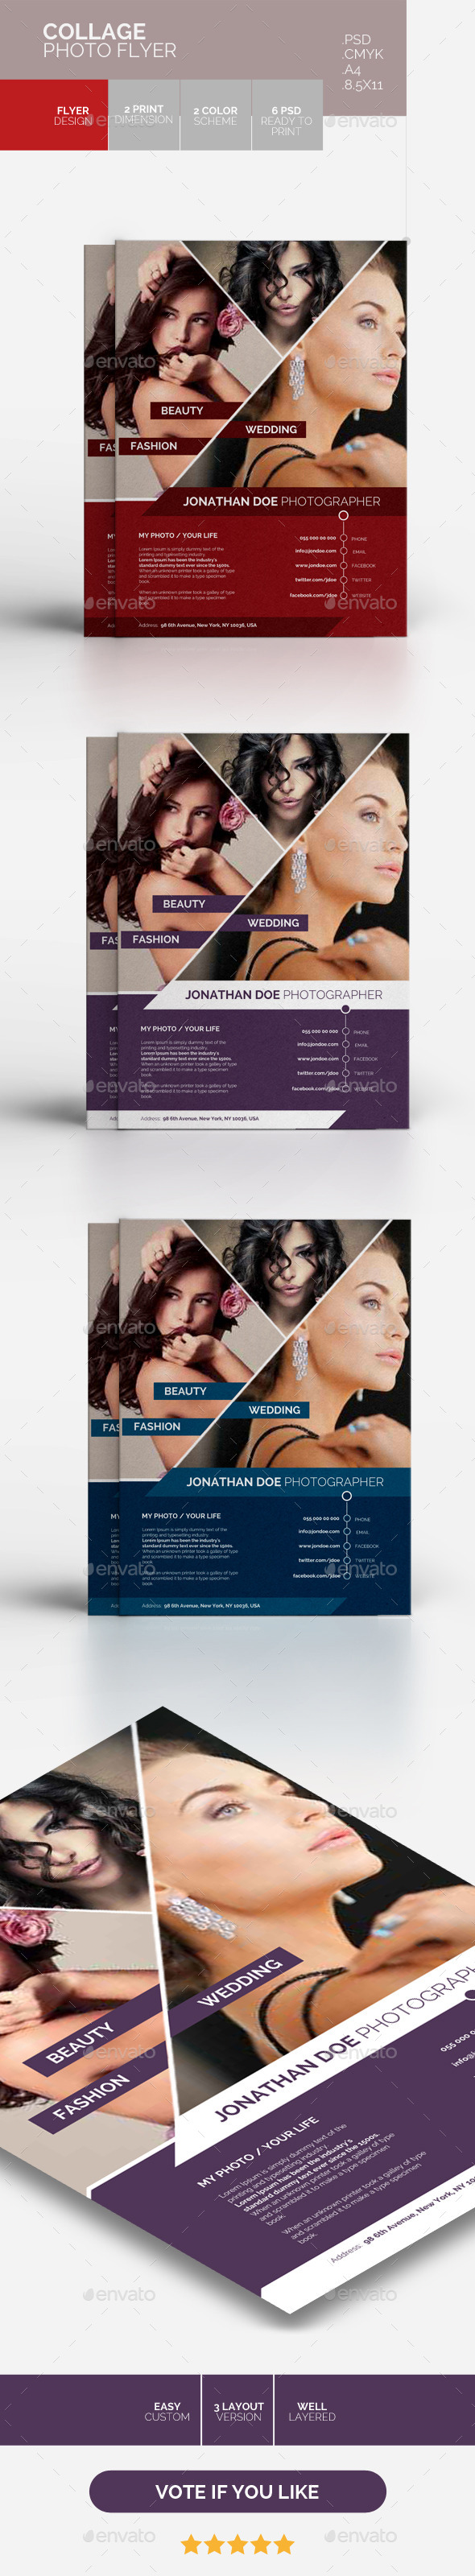 GraphicRiver COLLAGE PHOTO FLYER 10463111